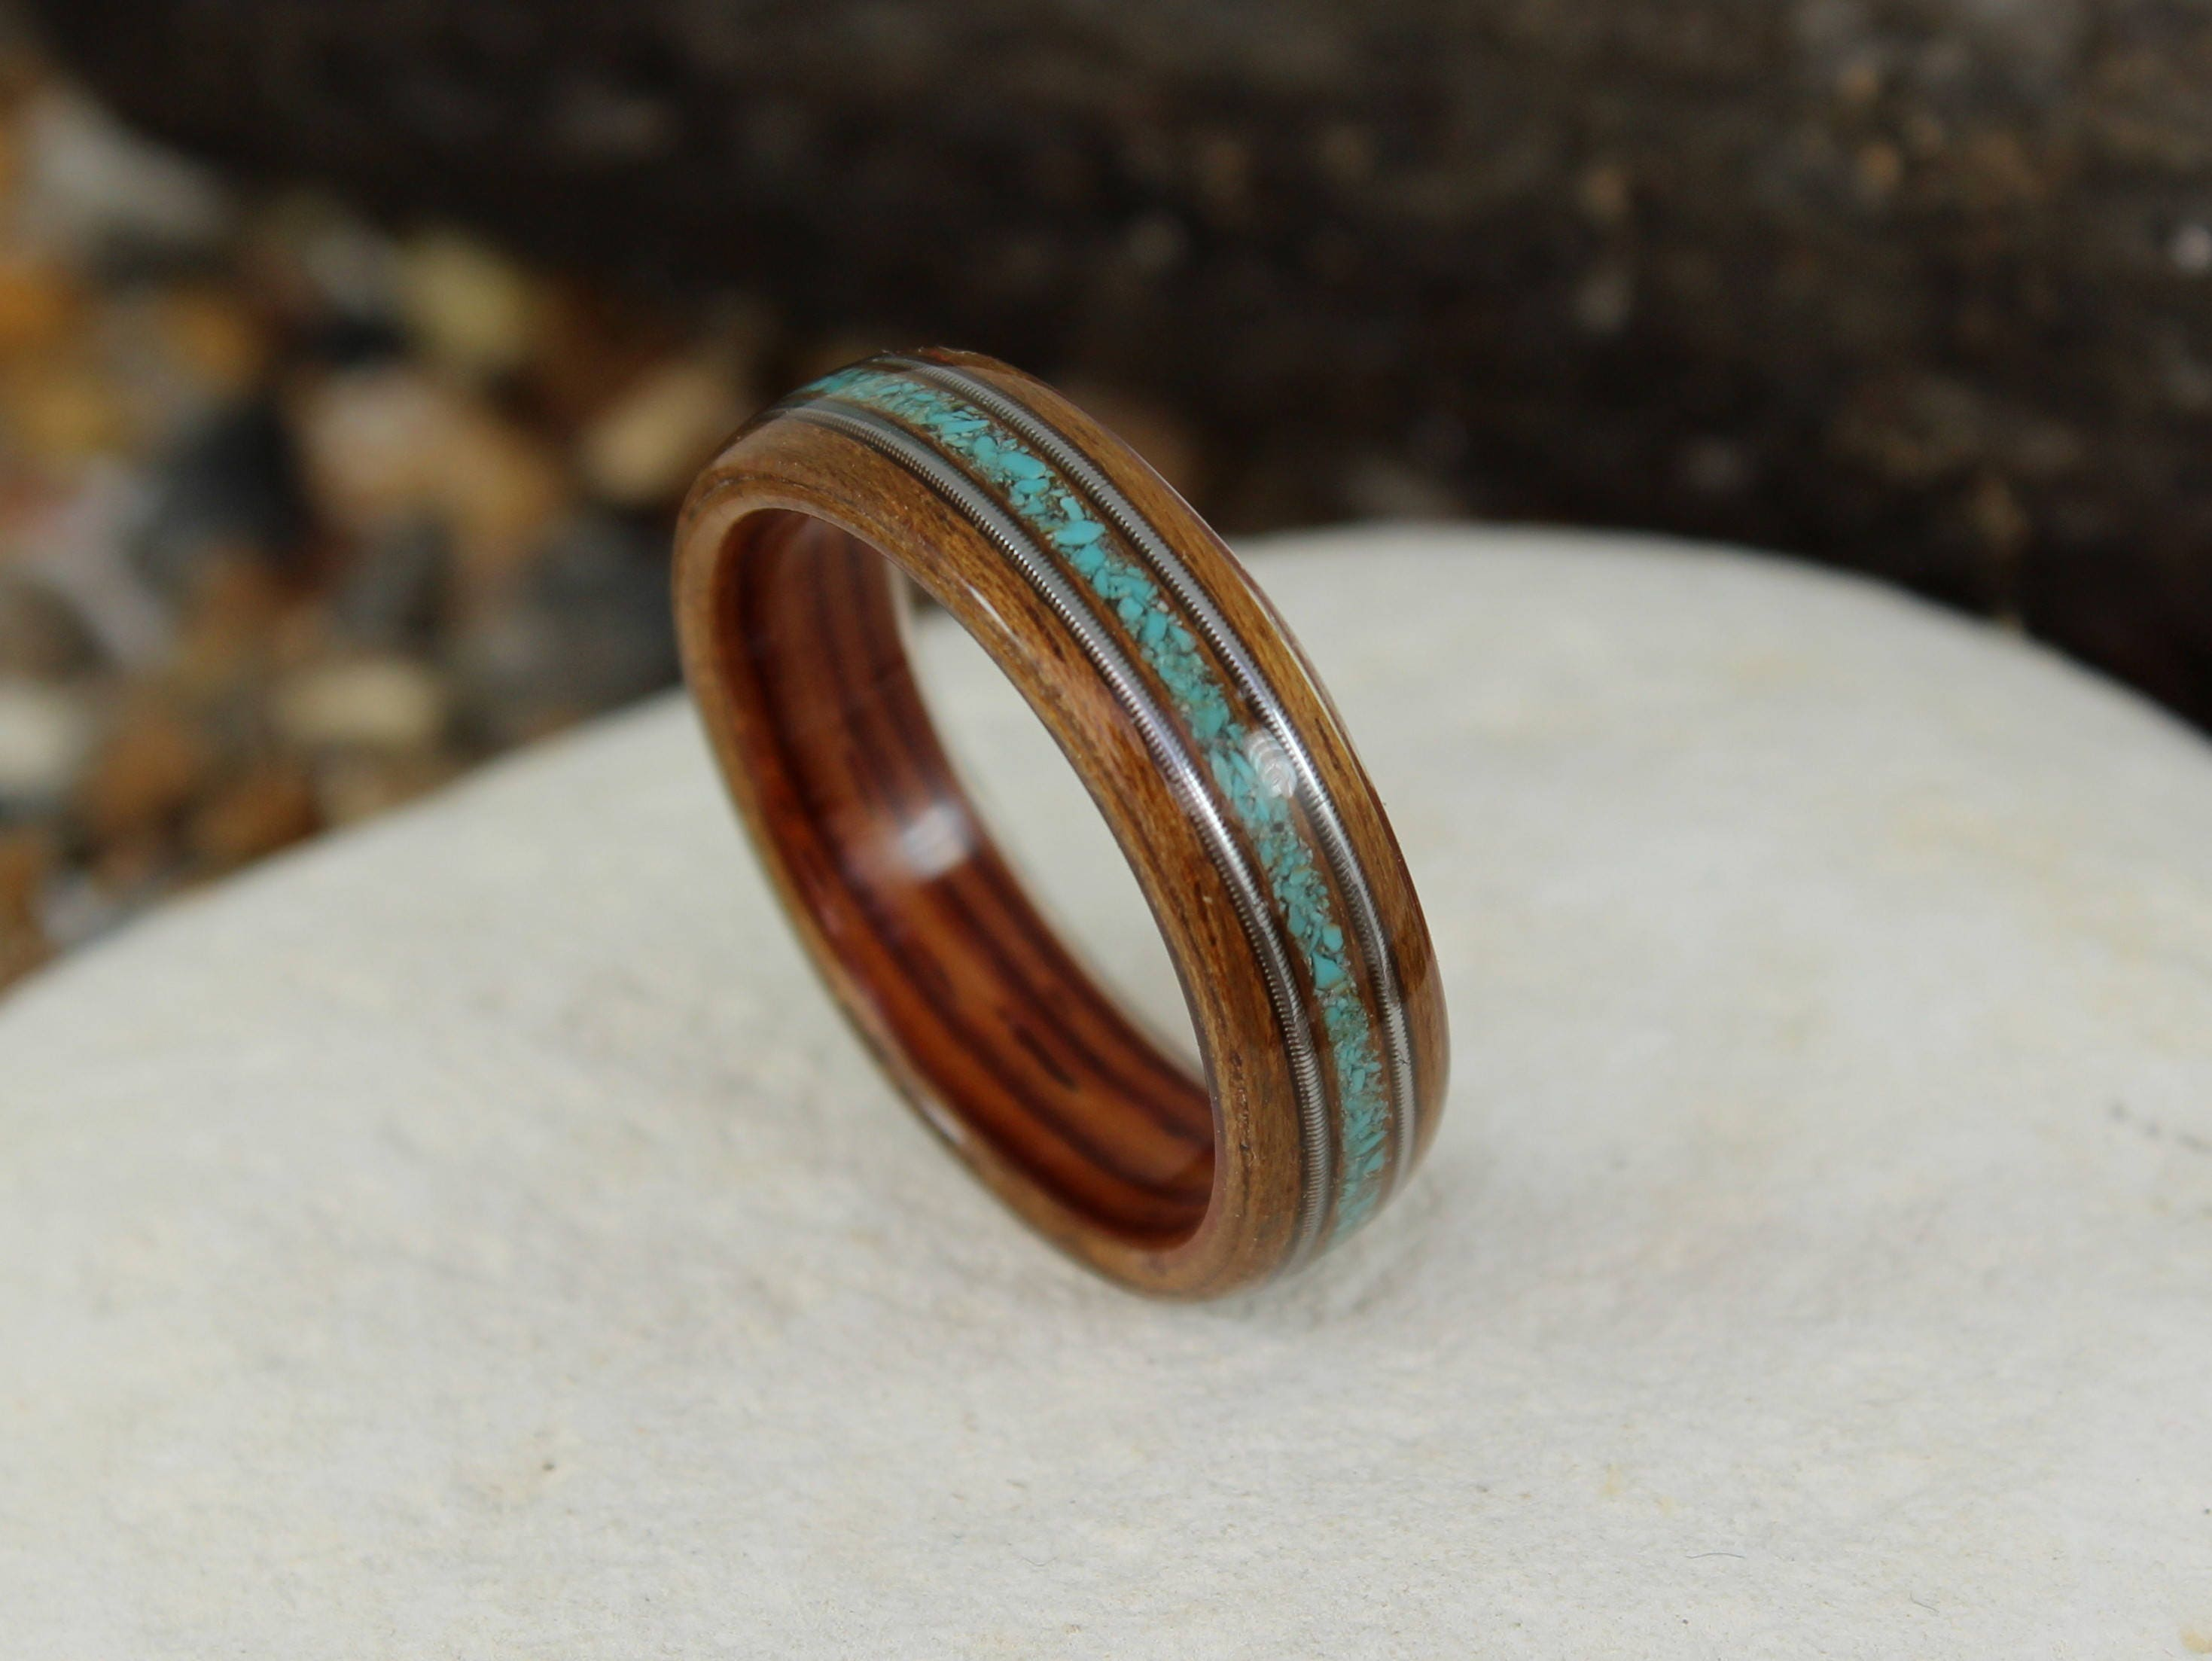 genuine overstock free ring shaped wedding rings on shipping antiqued product oval watches naturalist over in abalone silvertone palmbeach jewelry orders